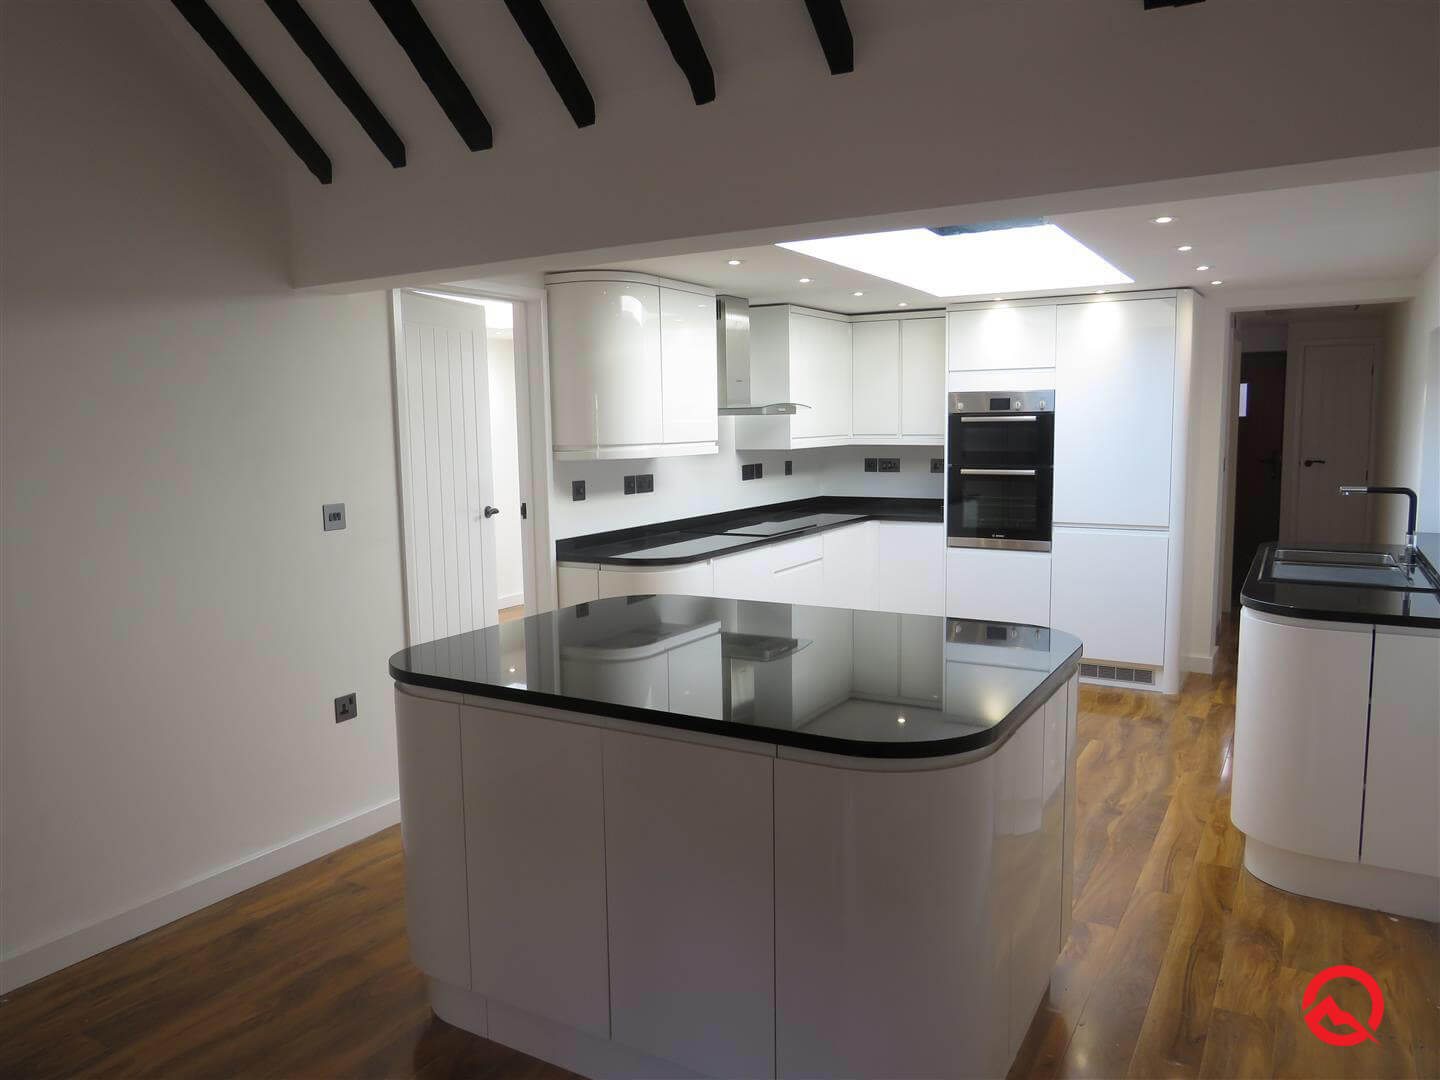 "granite quartz worktops <a href=""https://www.gqworktops.com/granite-quartz-worktops-sheffield/"">Sheffield</a>"